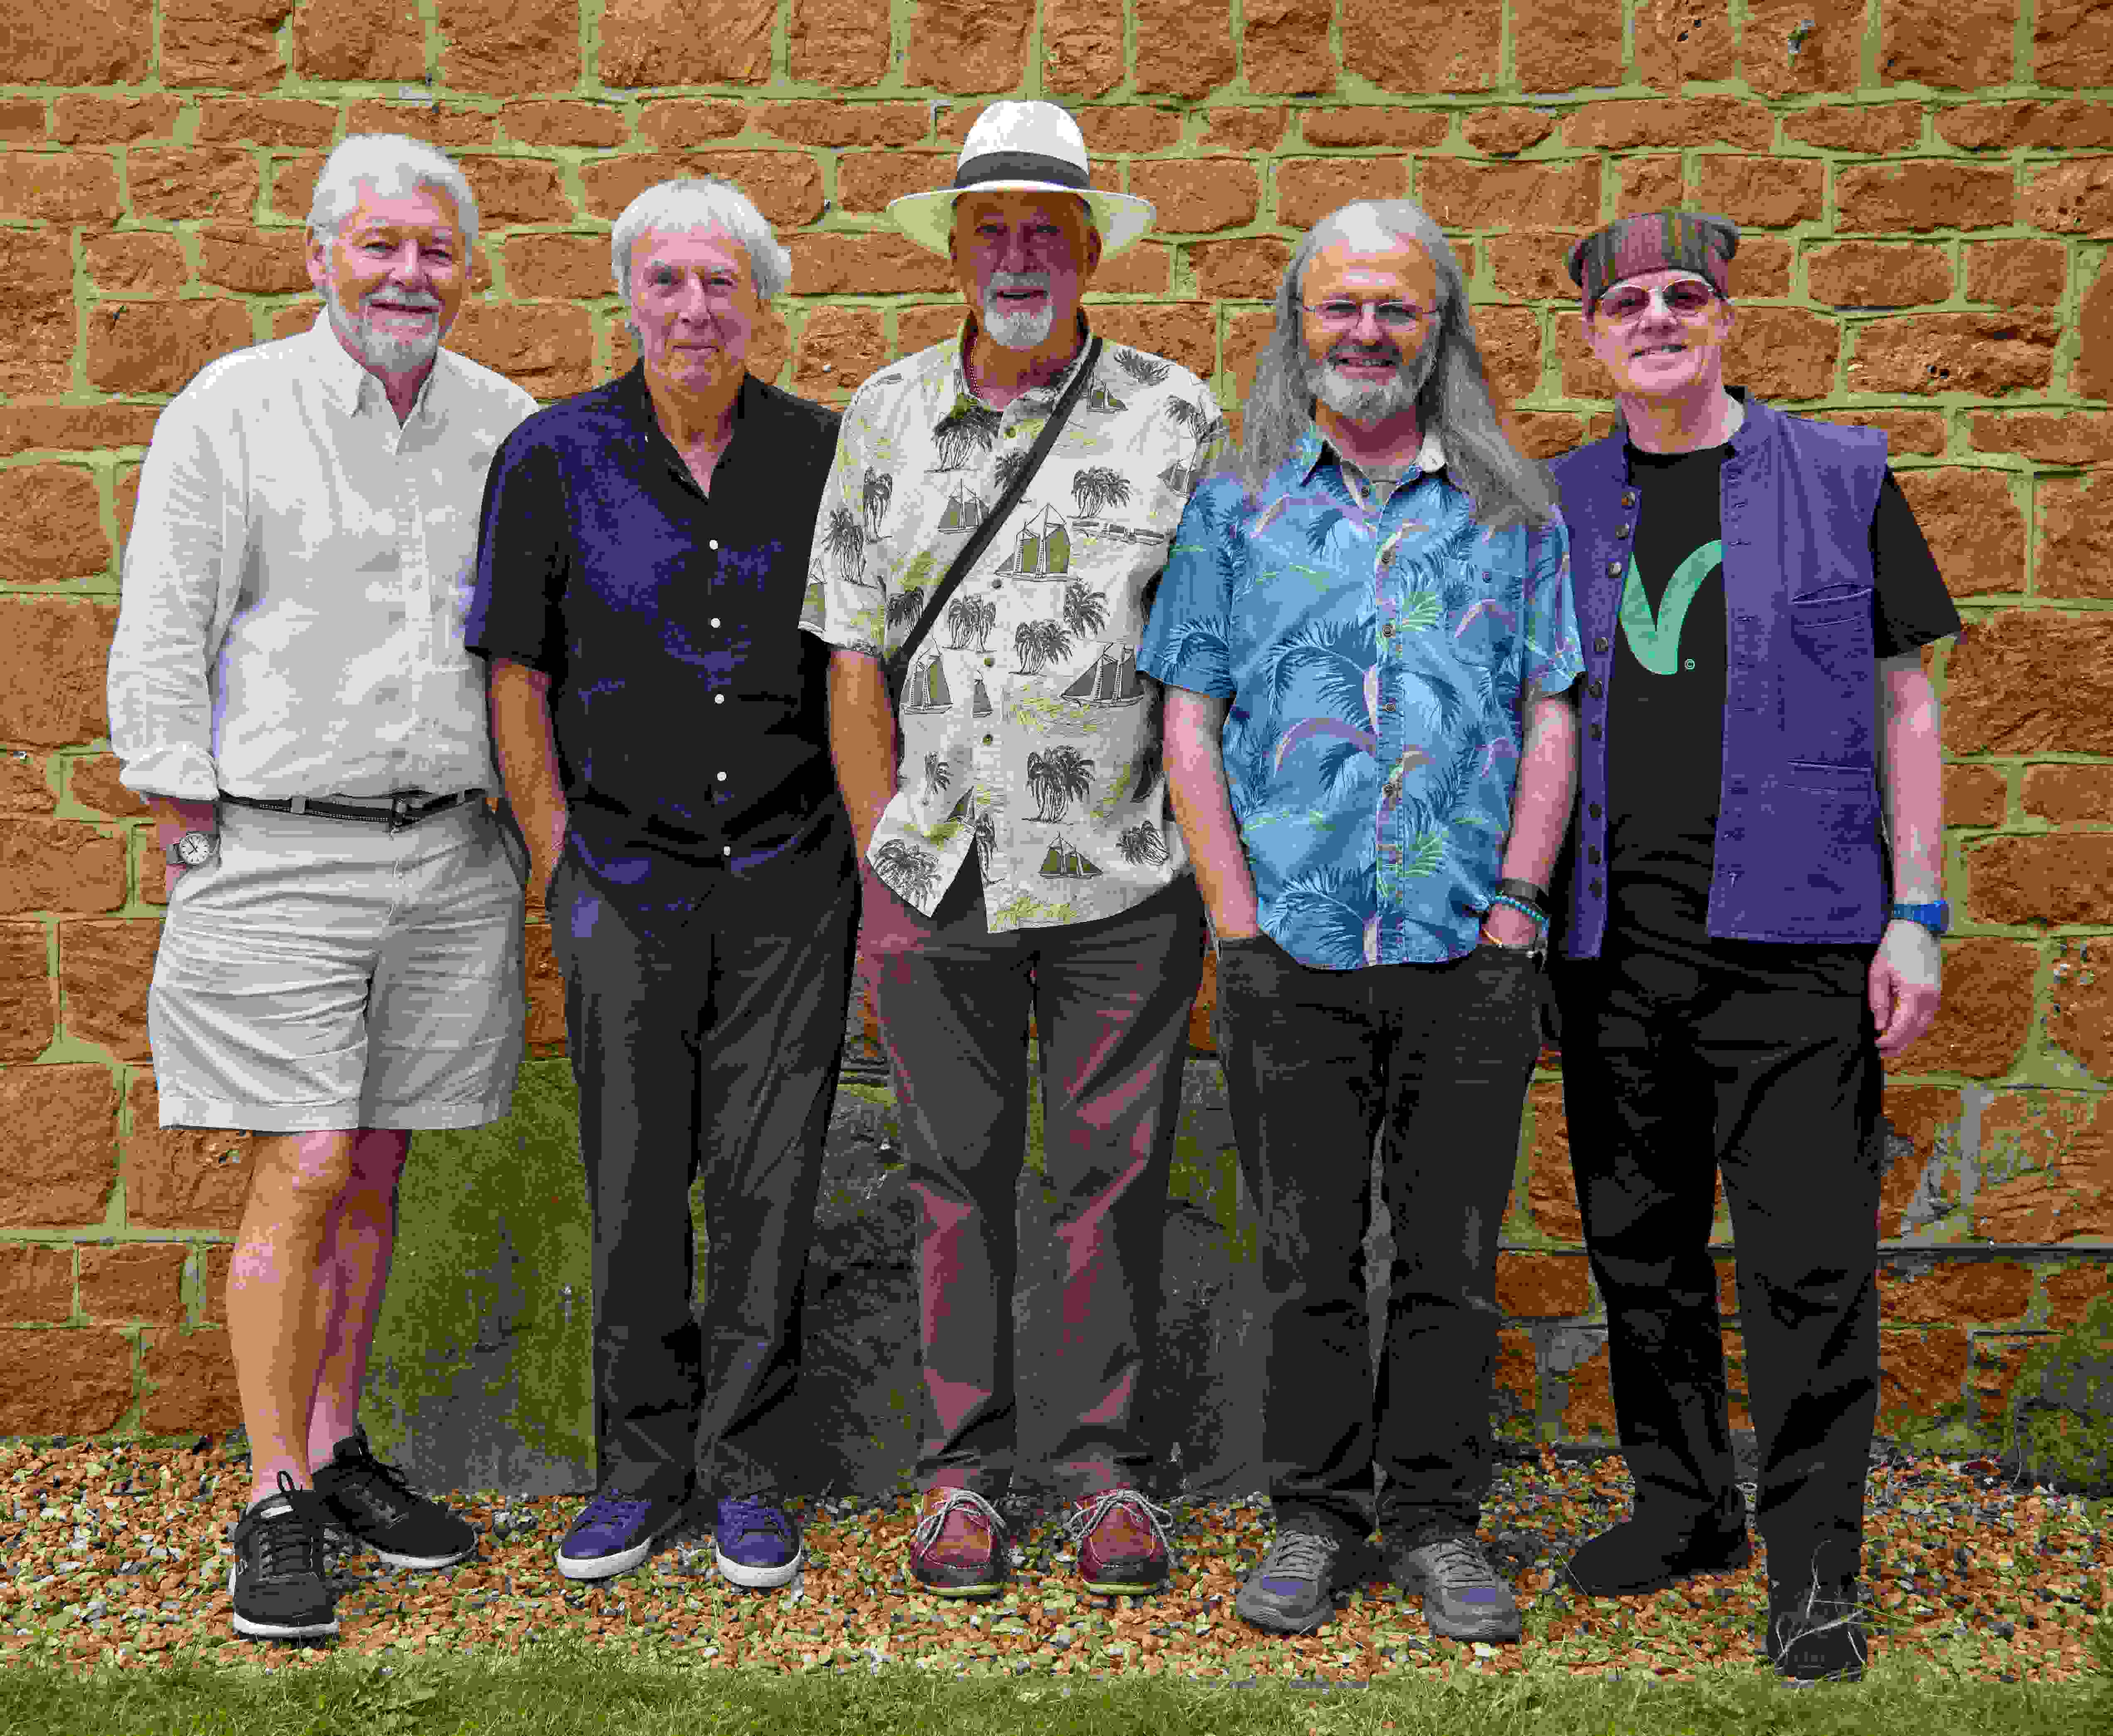 Fairport Convention 2019